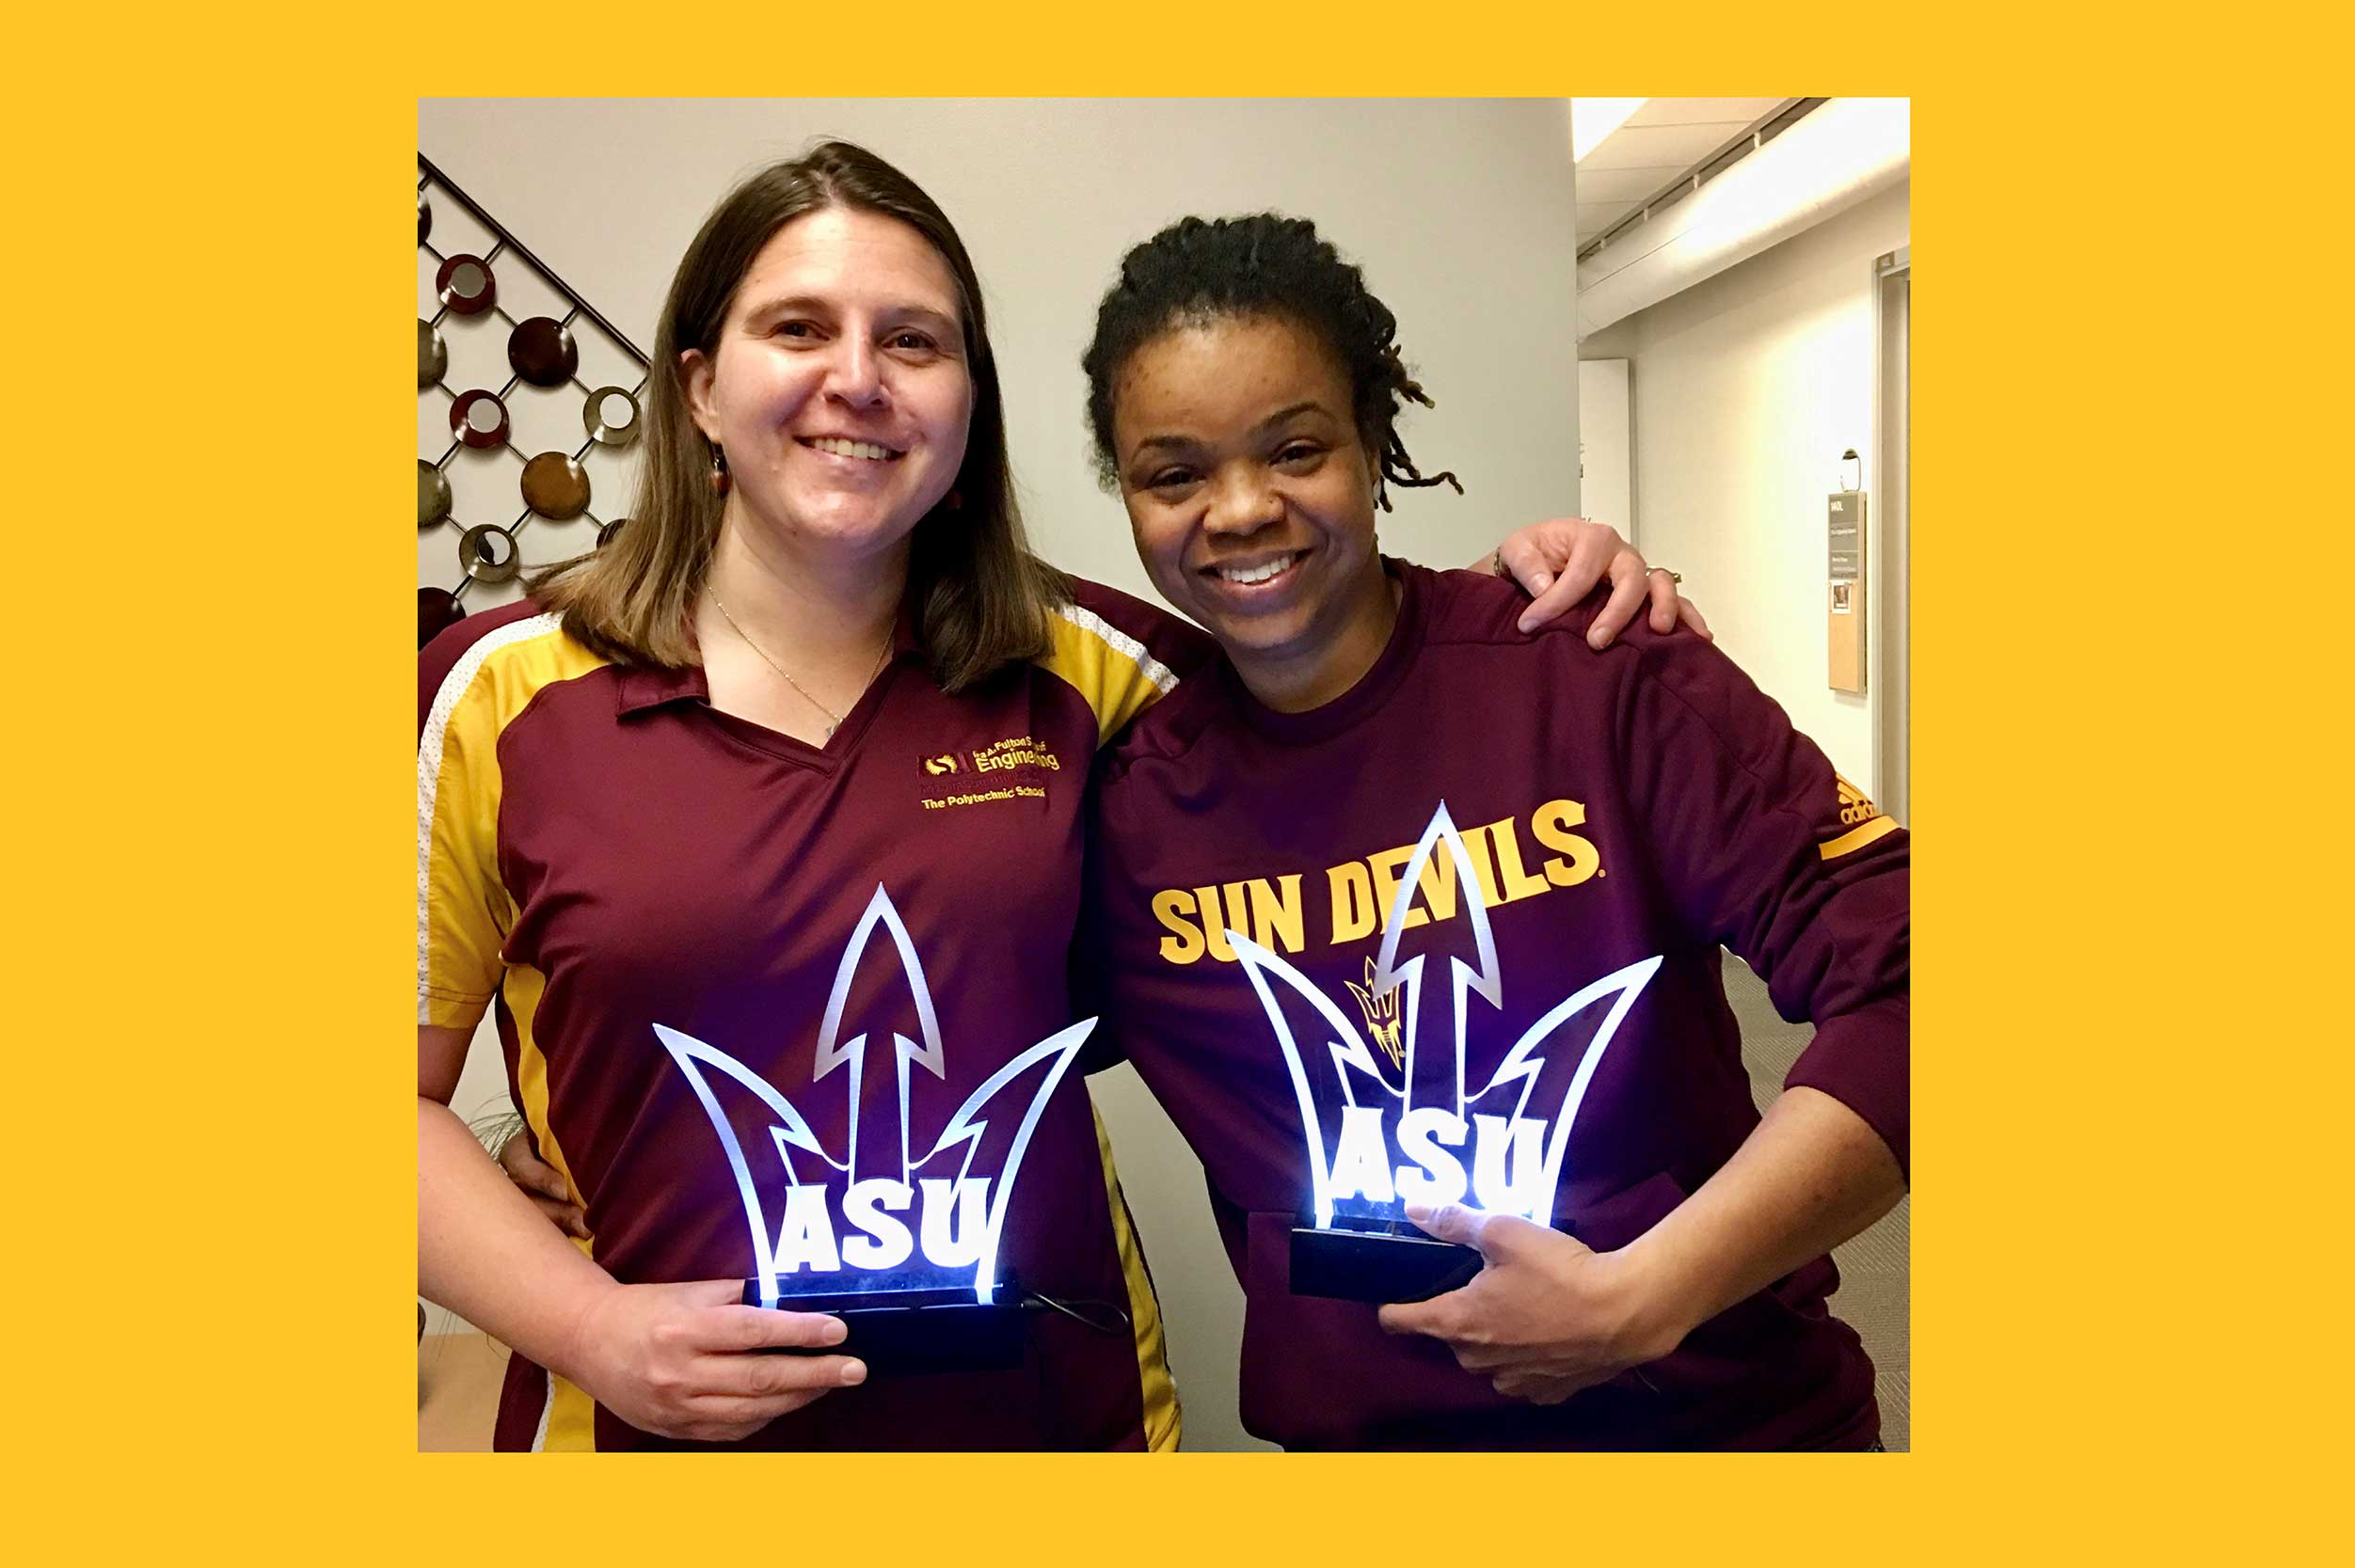 Jennifer Bekki and Brooke Coley stand together, arms around each other, holding their awards from ASU